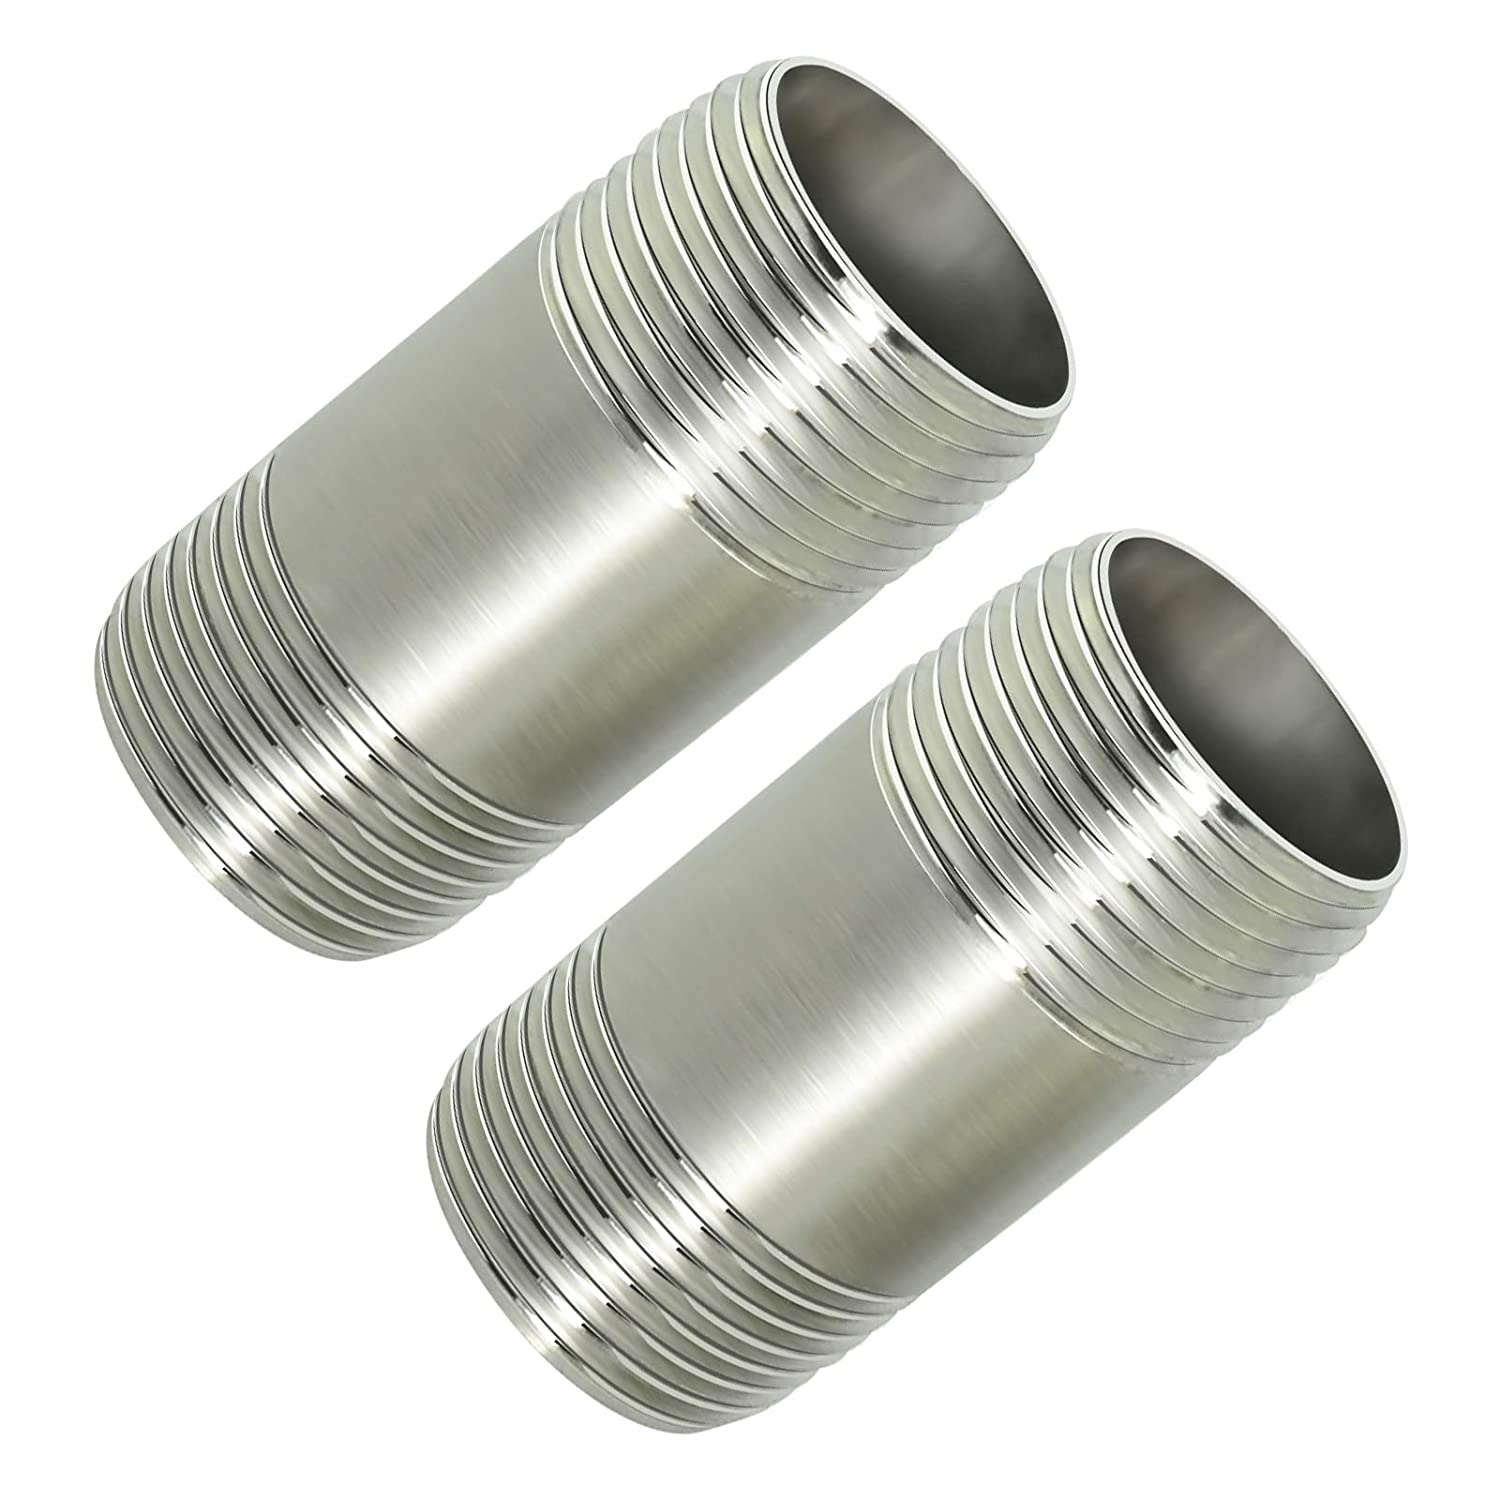 Taisher 2Pcs Stainless Steel Pipe Fittings, 3/4